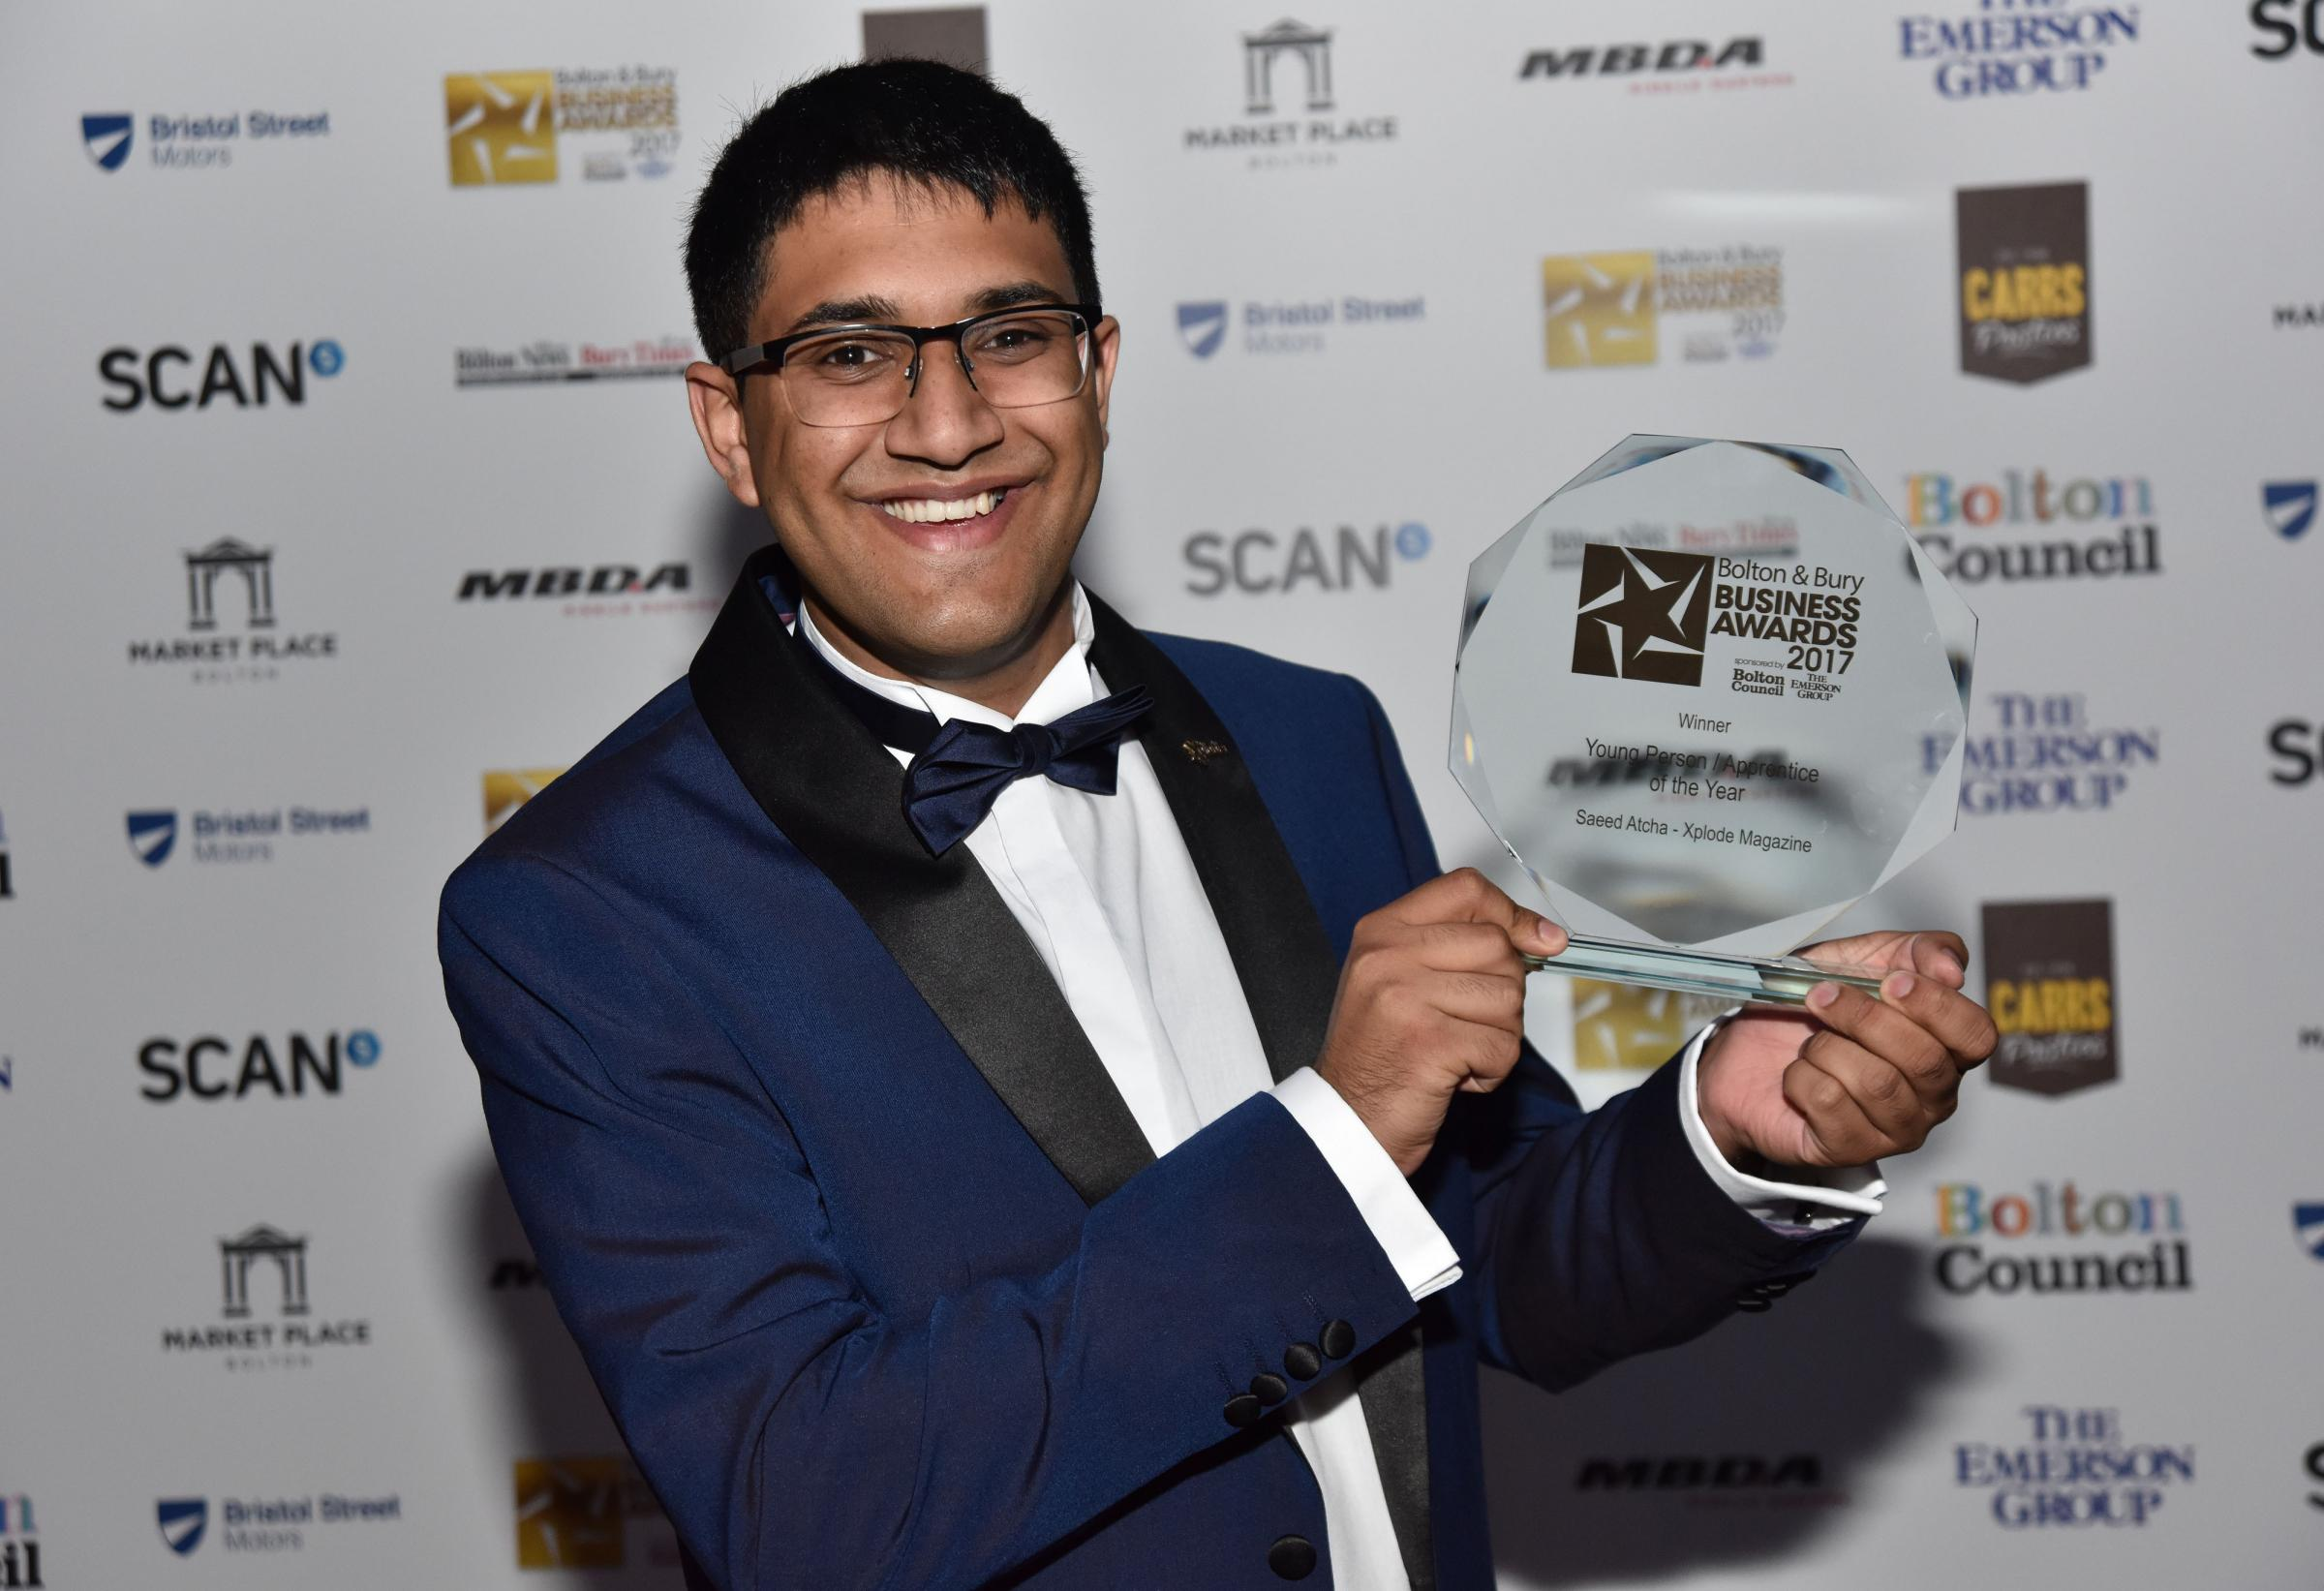 Xplode magazine chief executive Saeed Alcha with his latest business award